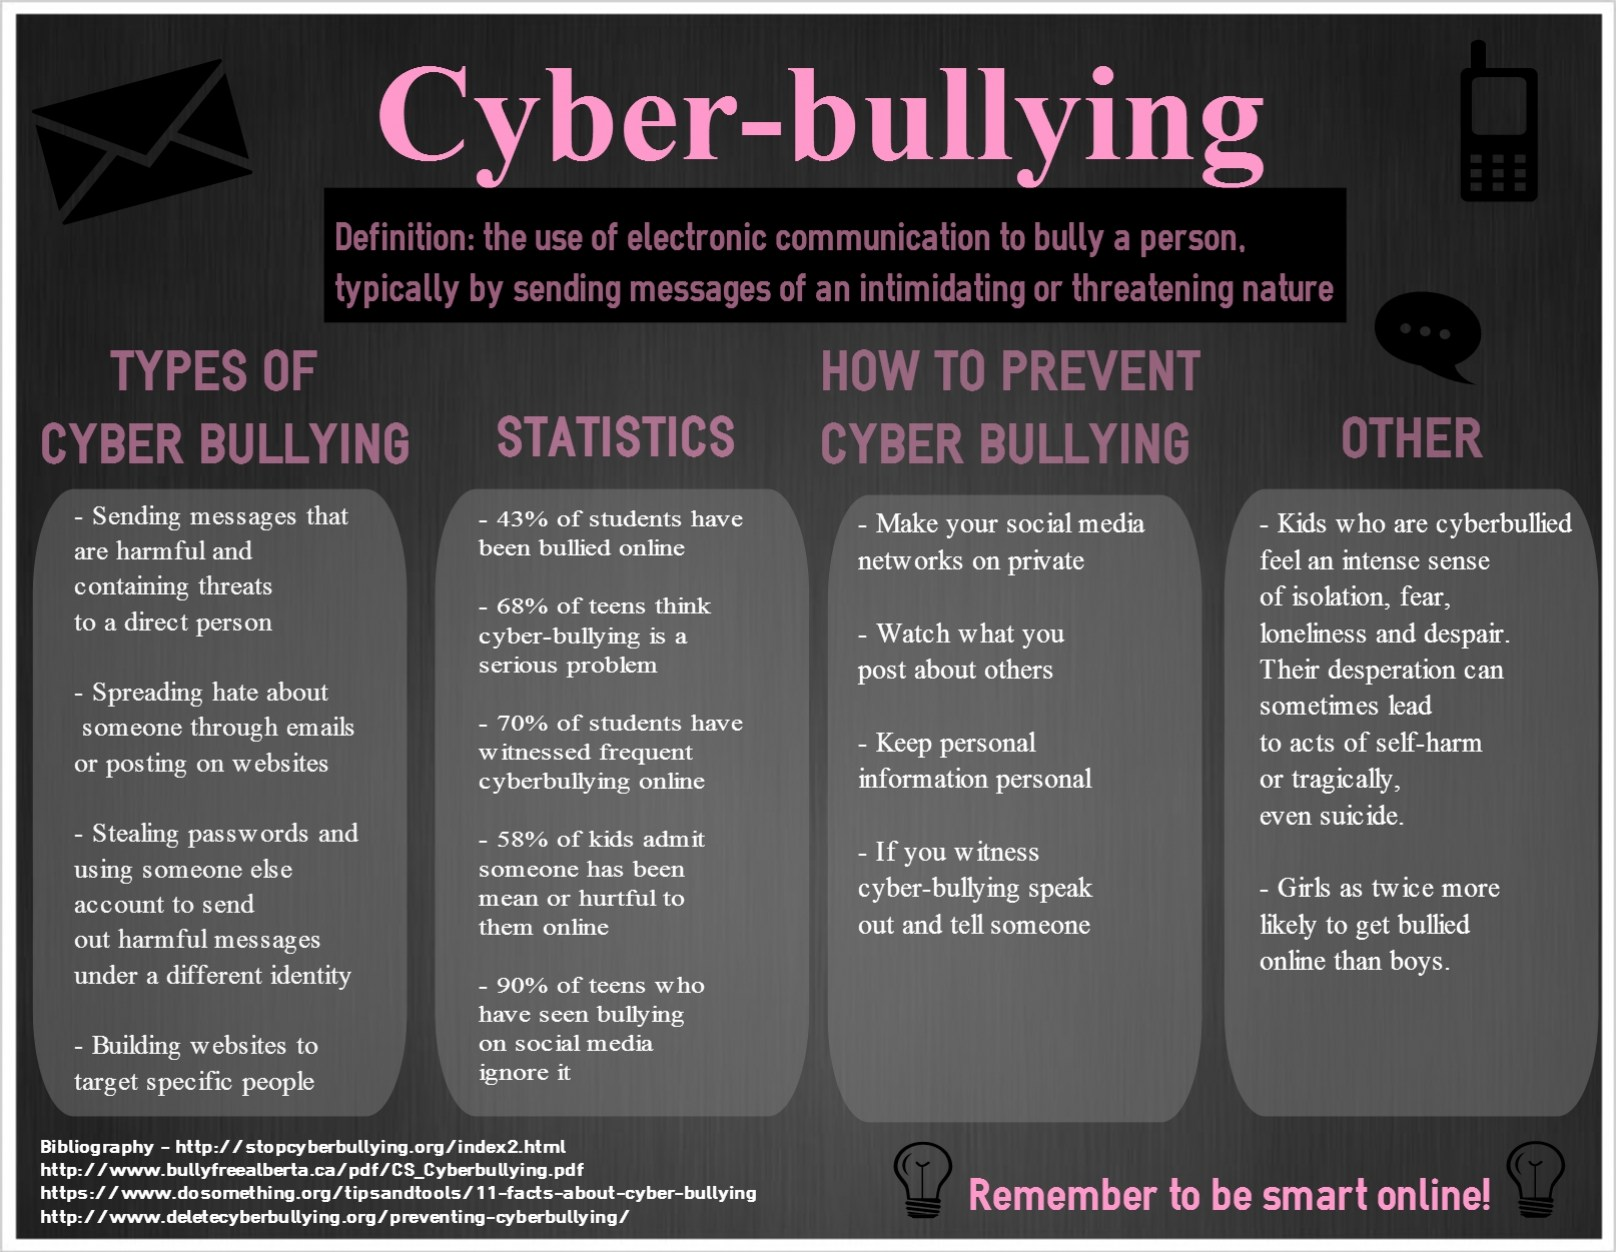 013 Cyberbullying Research Paper Rare Conclusion Full